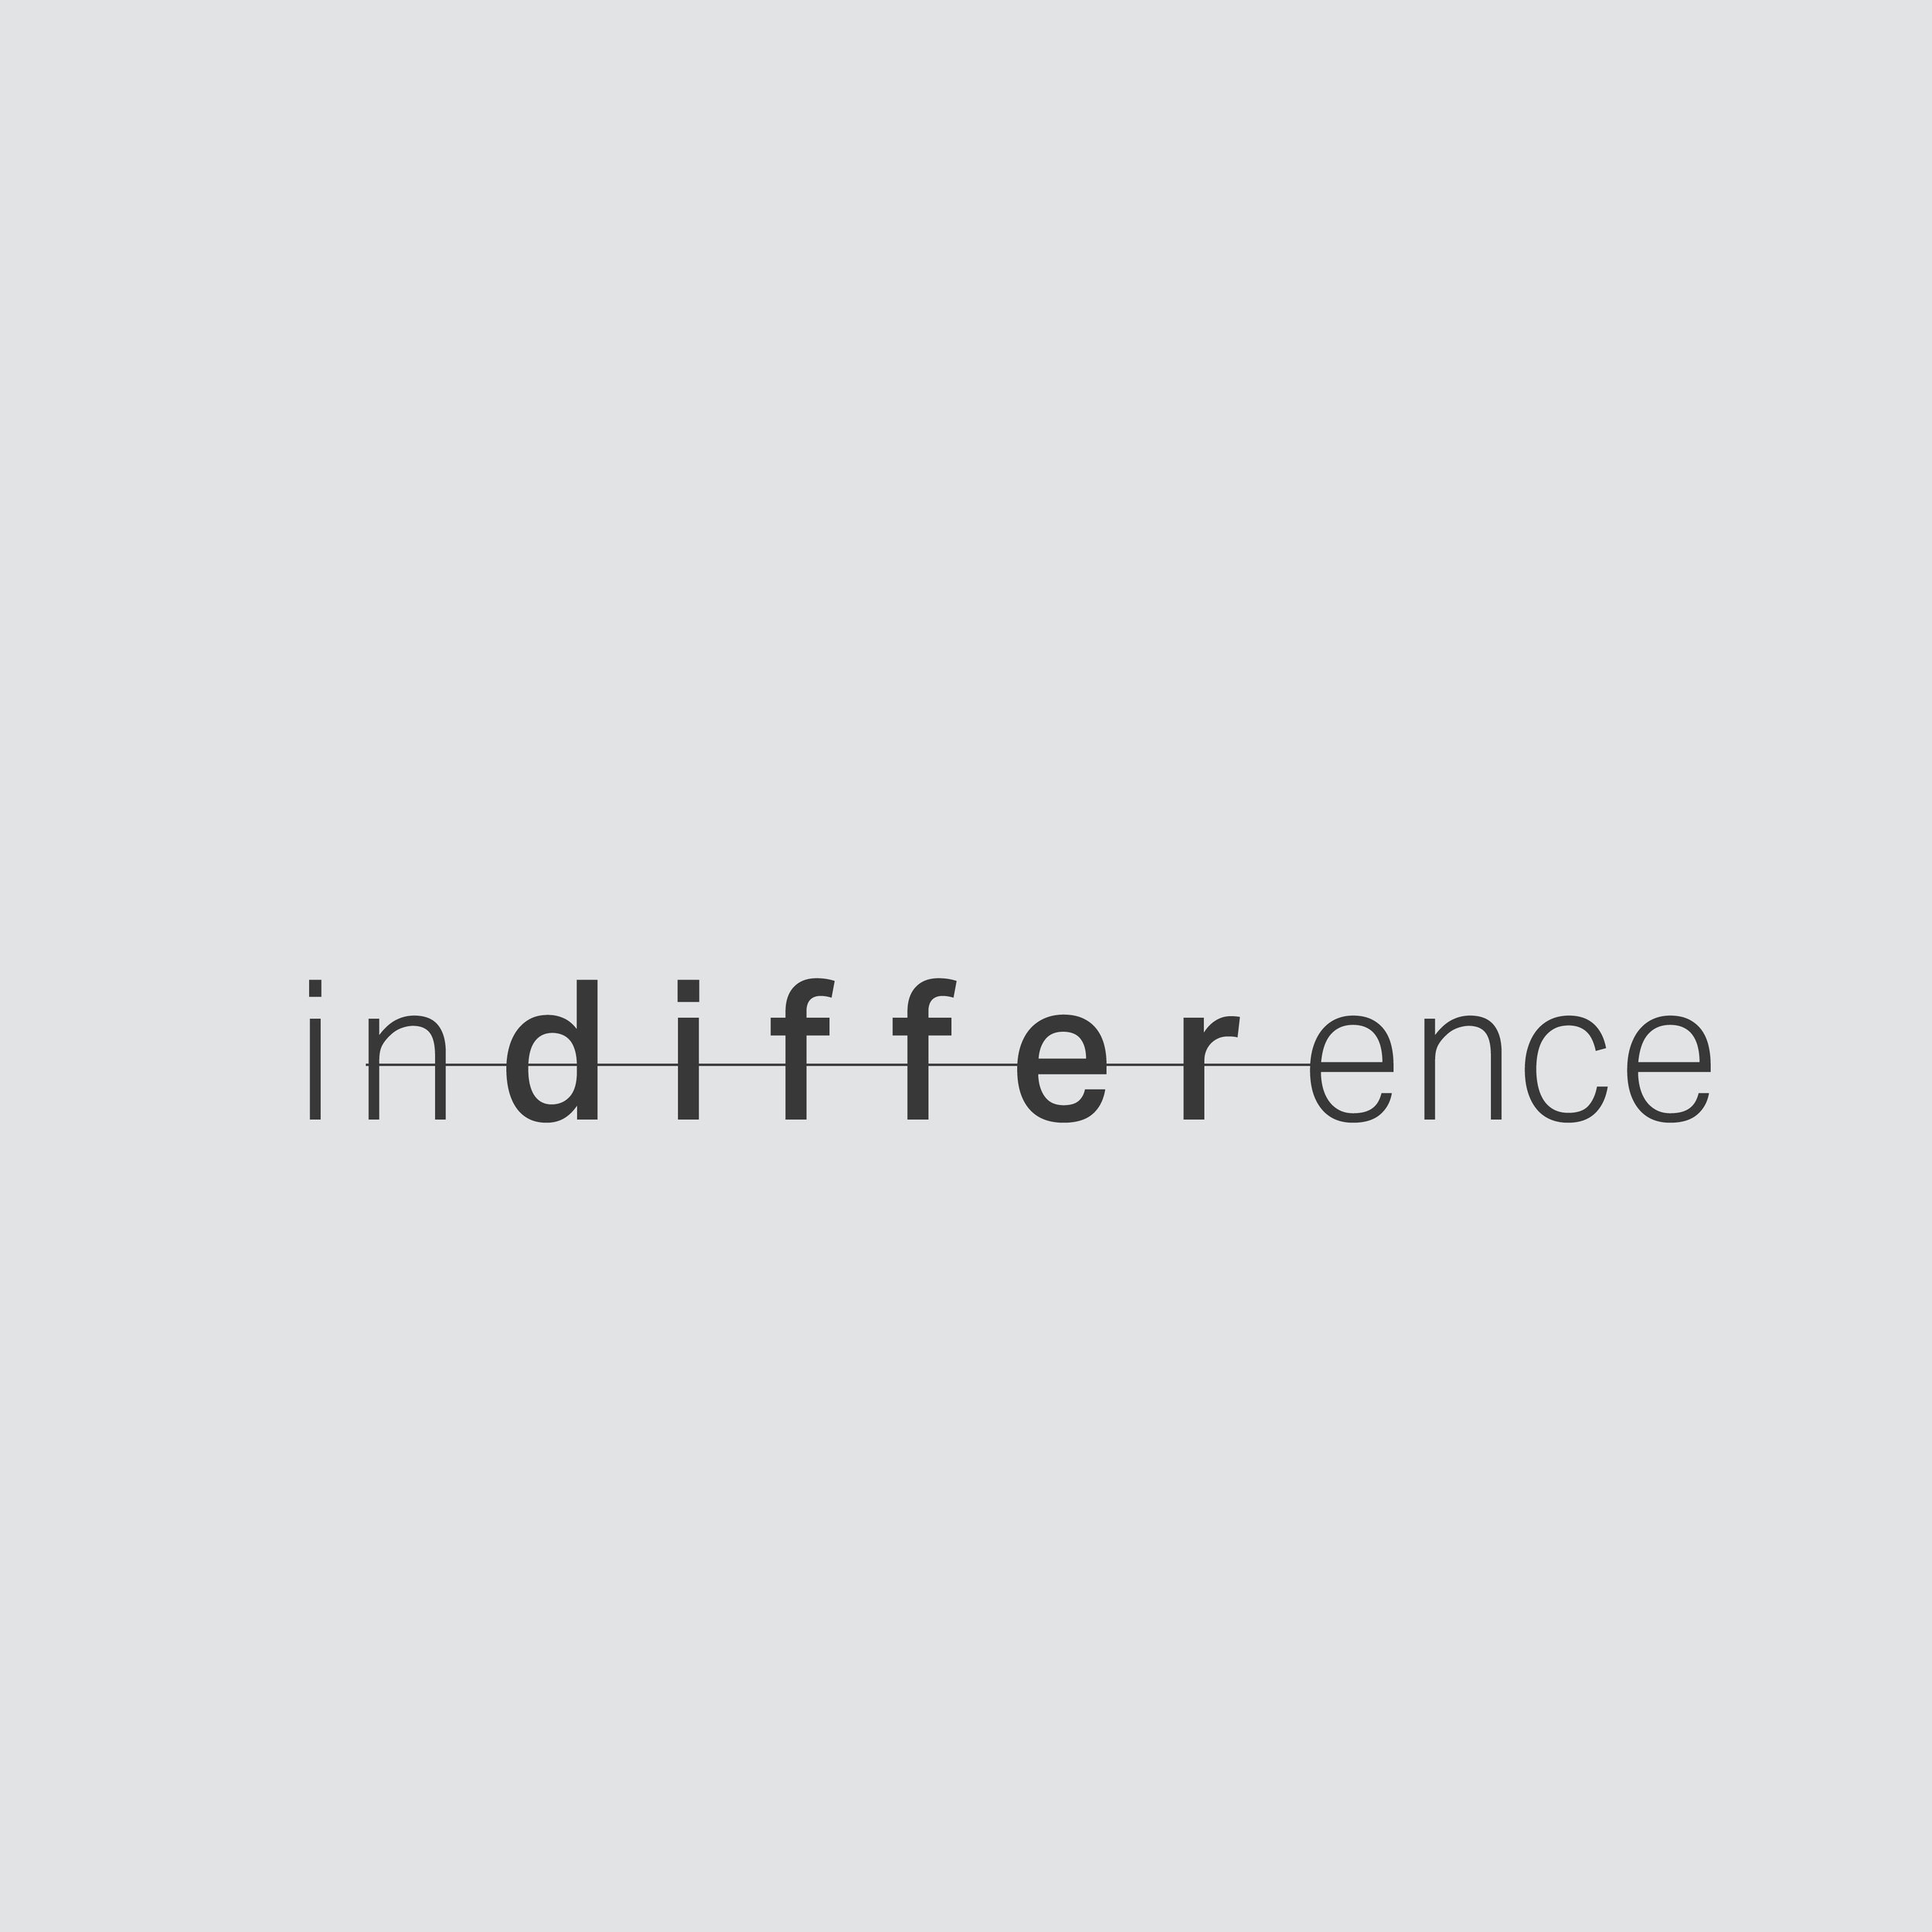 Indifference.jpg